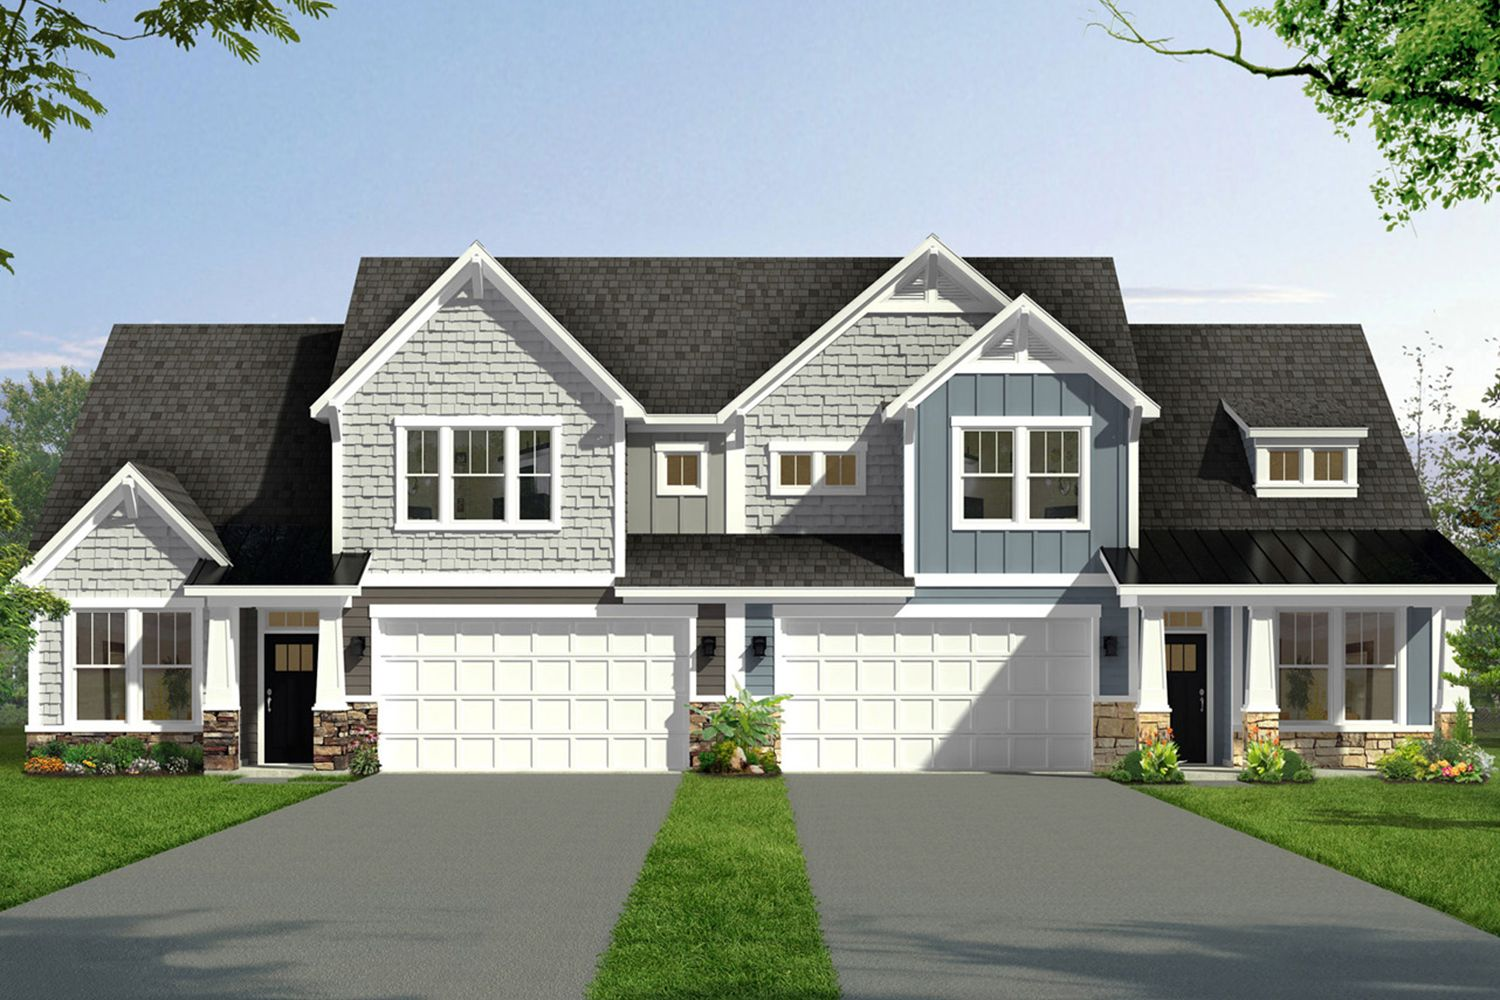 Single Family for Sale at Village At Green Meadows - Fenway 2414 Corn Rd. Greenville, South Carolina 29607 United States